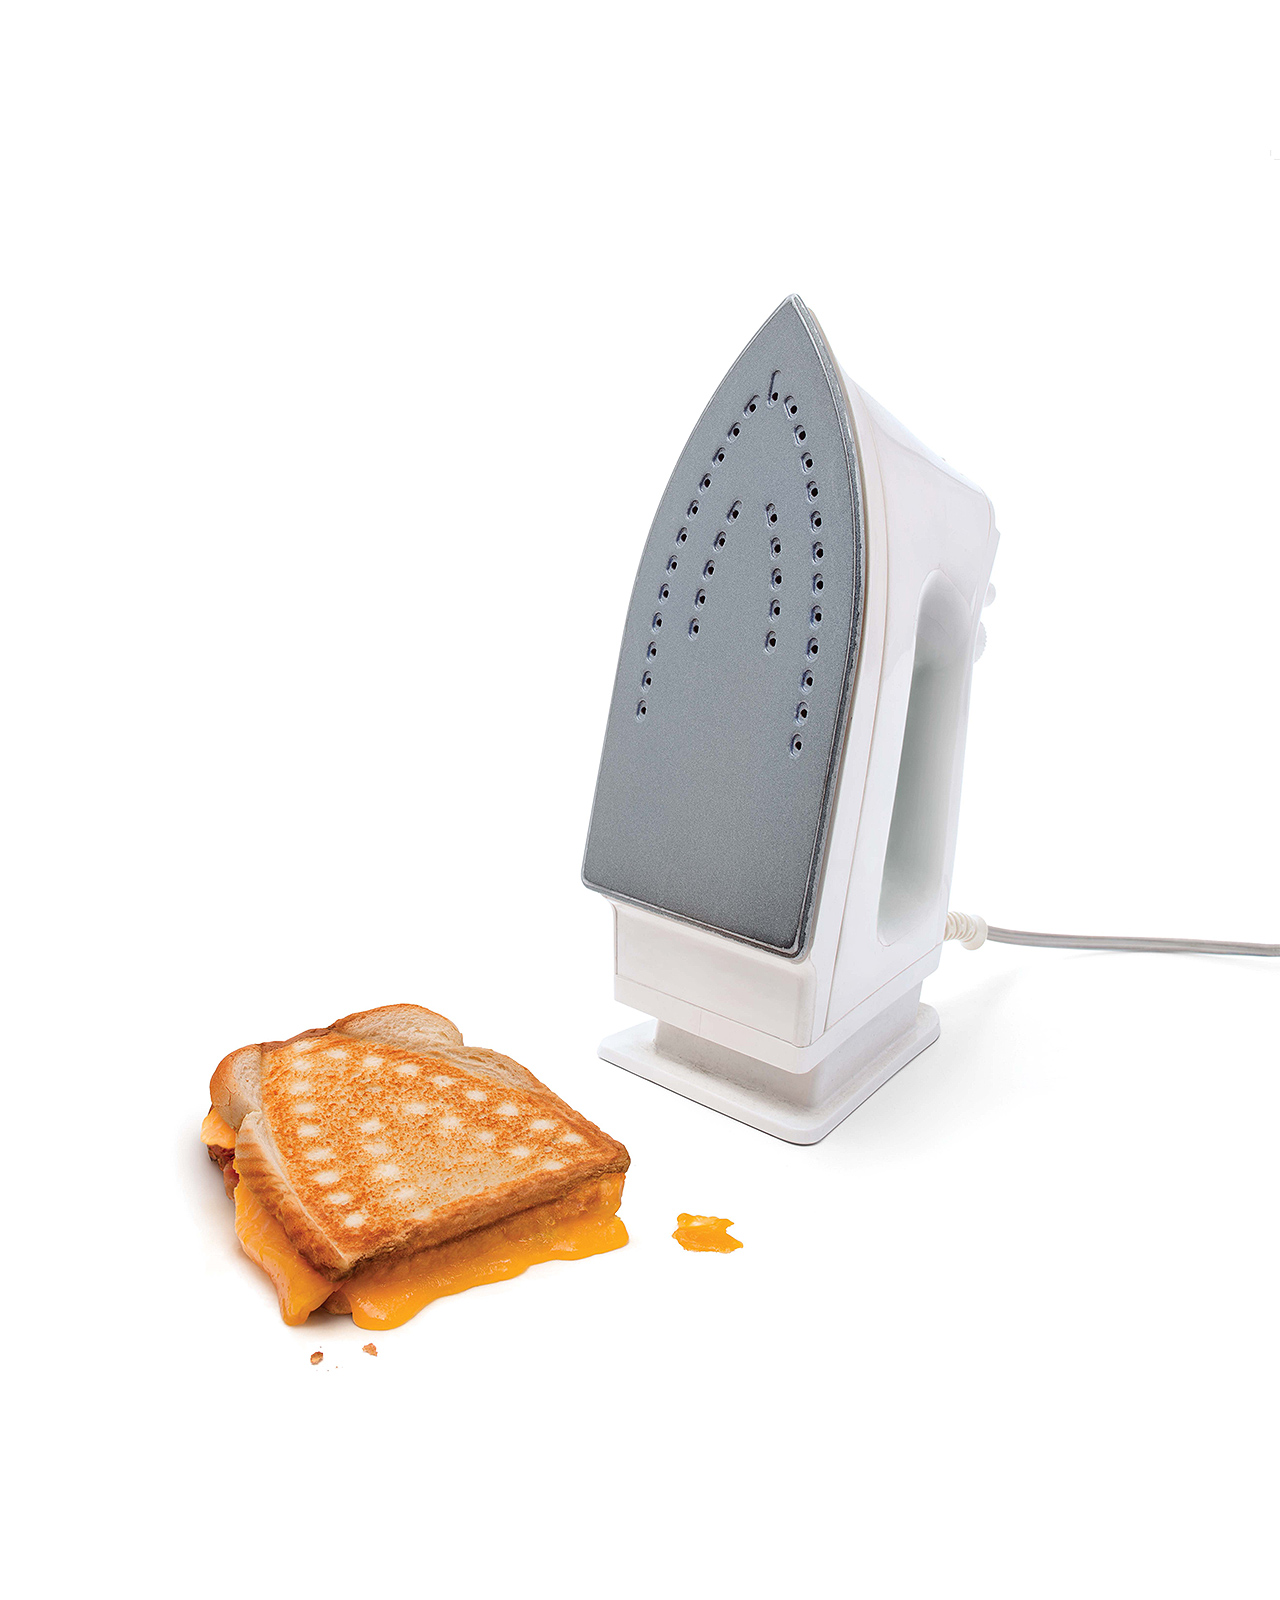 A grilled cheese sandwich made with an iron